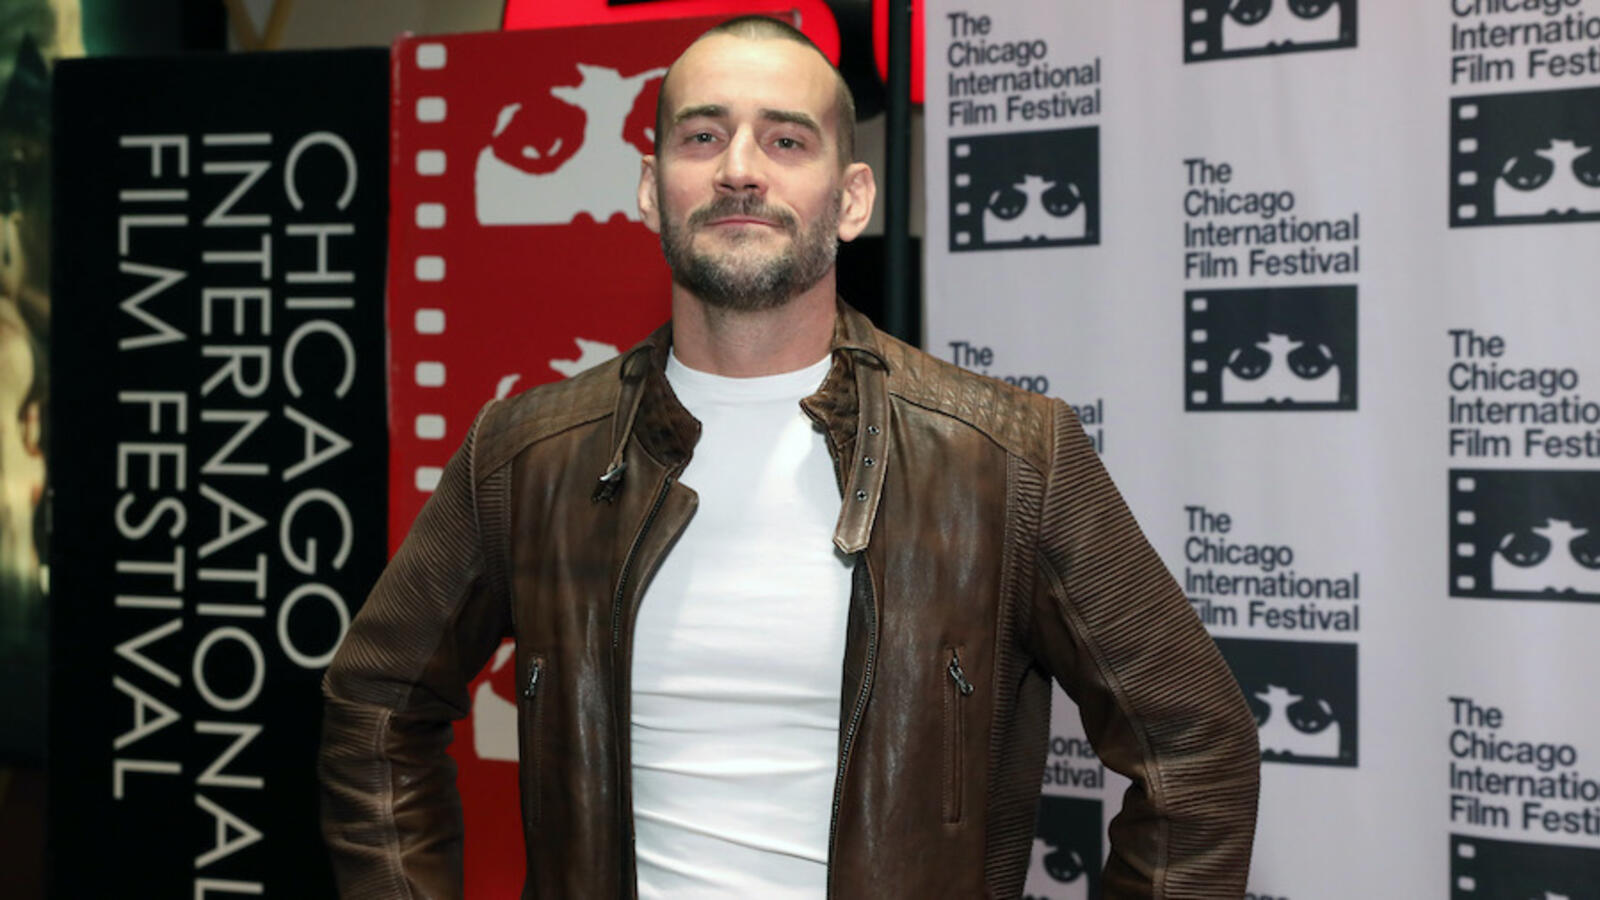 WATCH: AEW Teases CM Punk Debut Amid Reports Of Contract Agreement